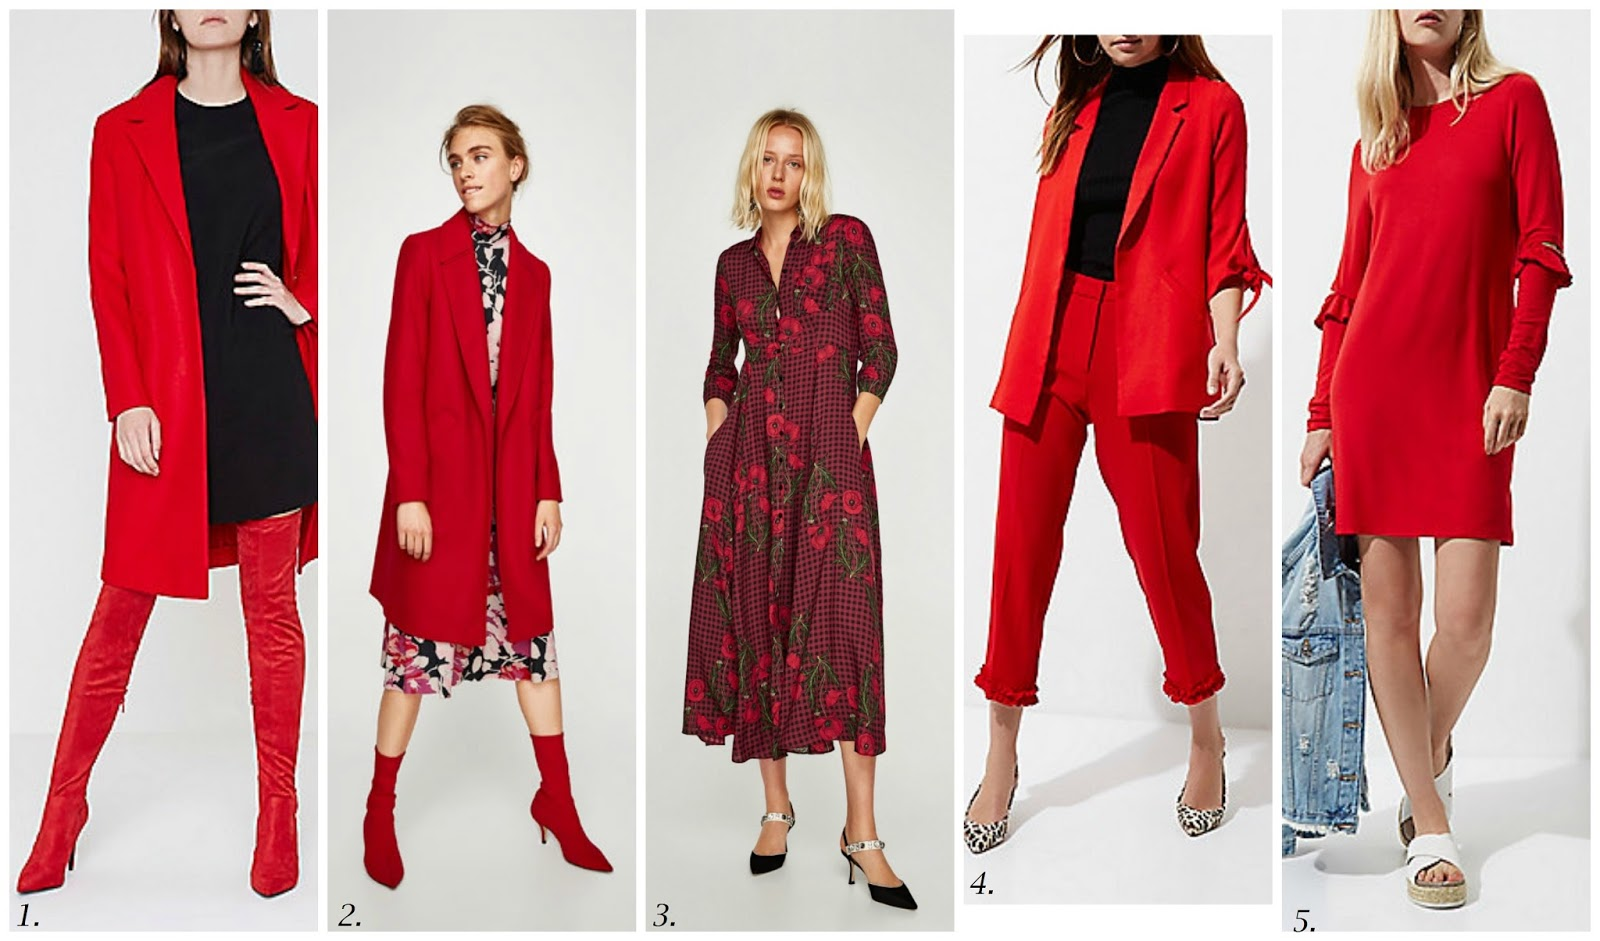 AW 17 Trend Focus - Red To Toe - How To Get The Look On The High Street - 3